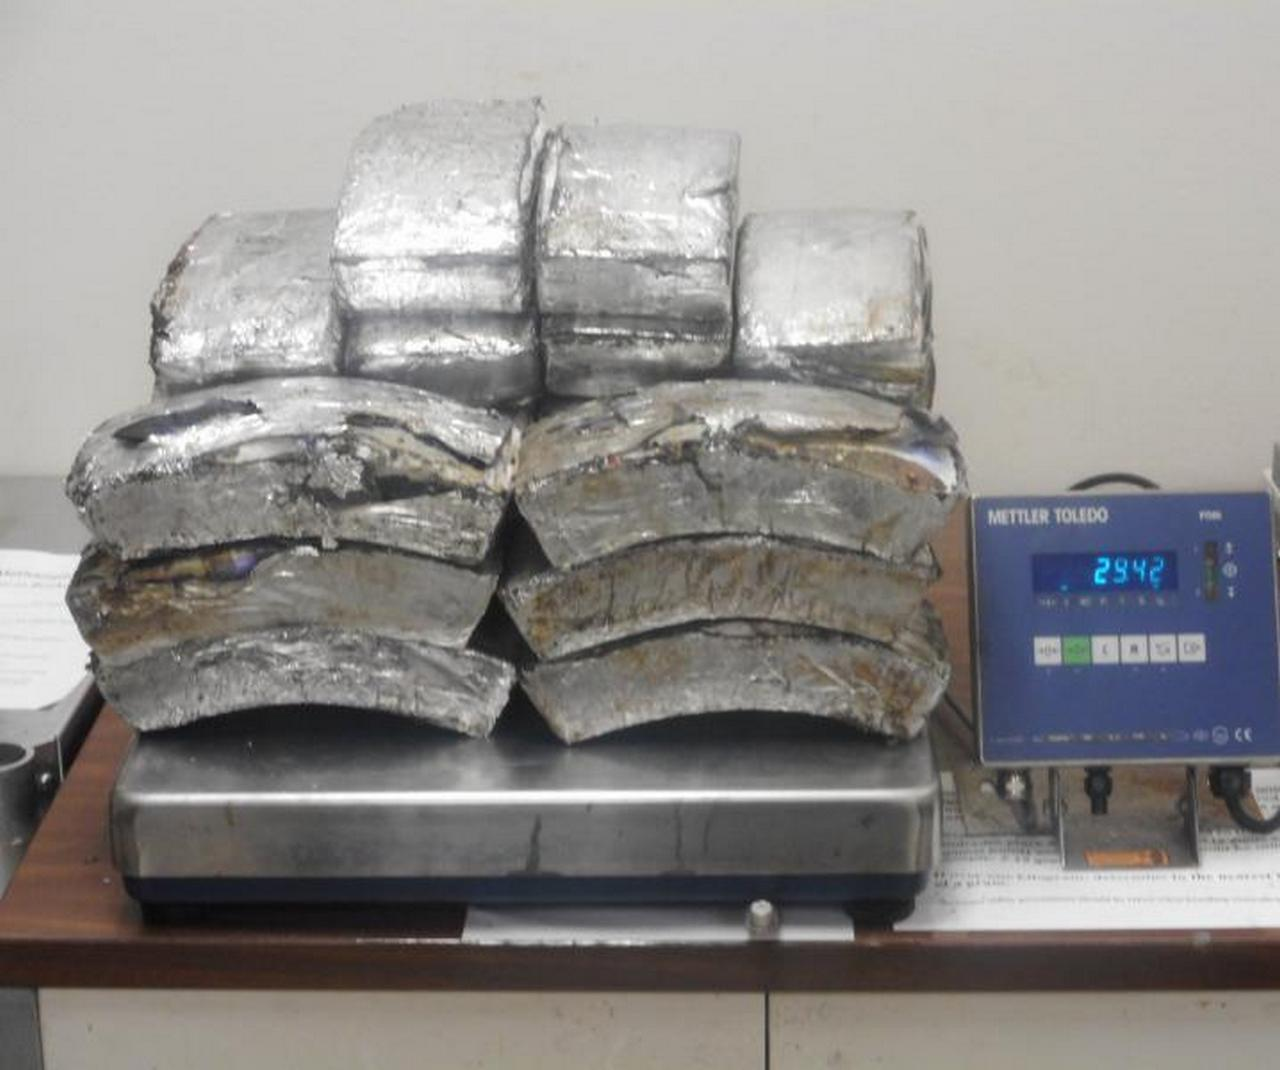 Border Patrol officers seize nearly $1.3 million in meth at Texas crossing